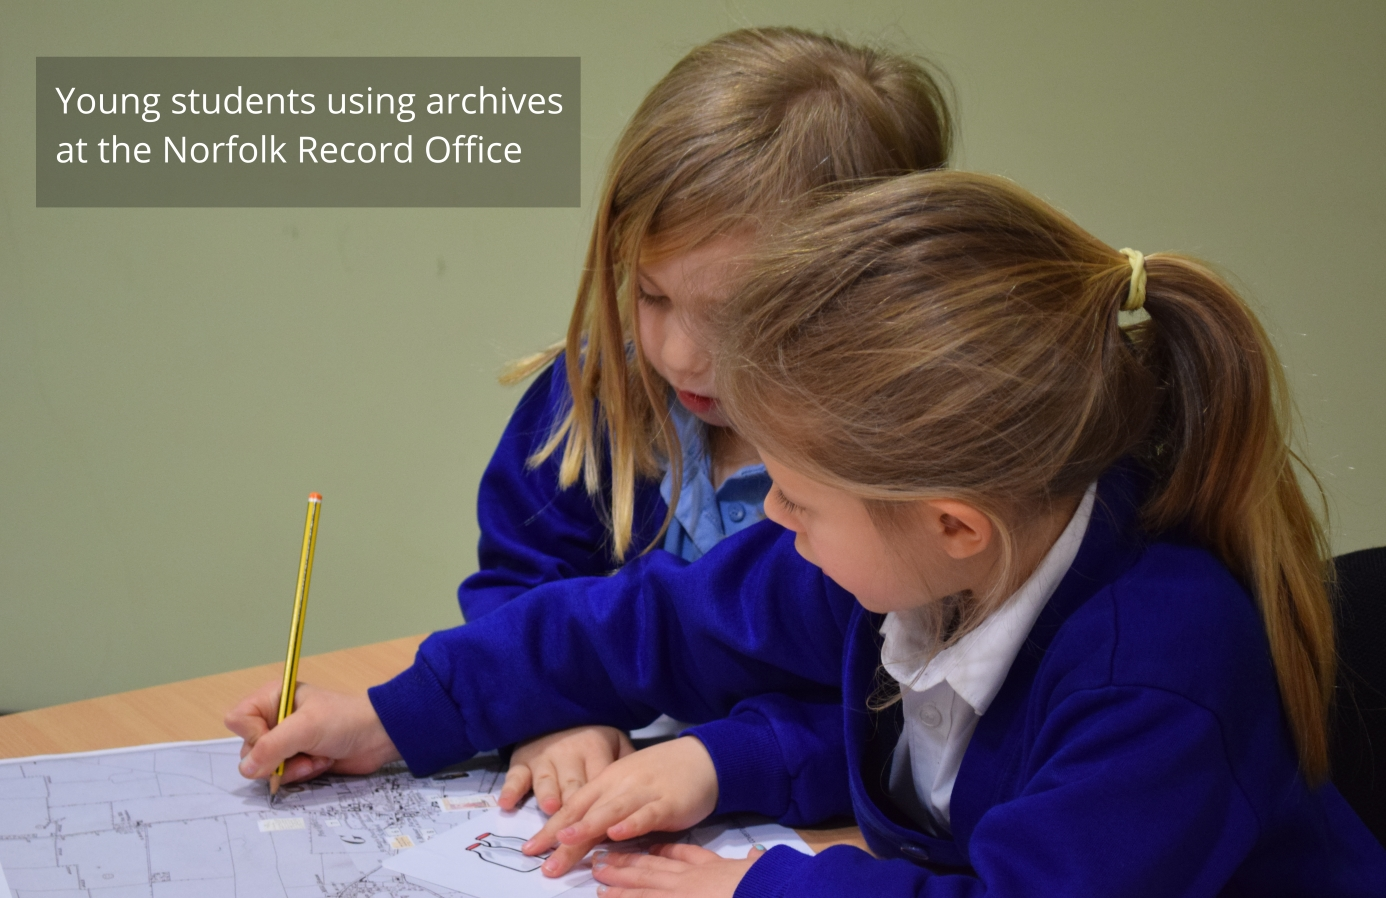 Young students learning from archives at the Norfolk Record Office